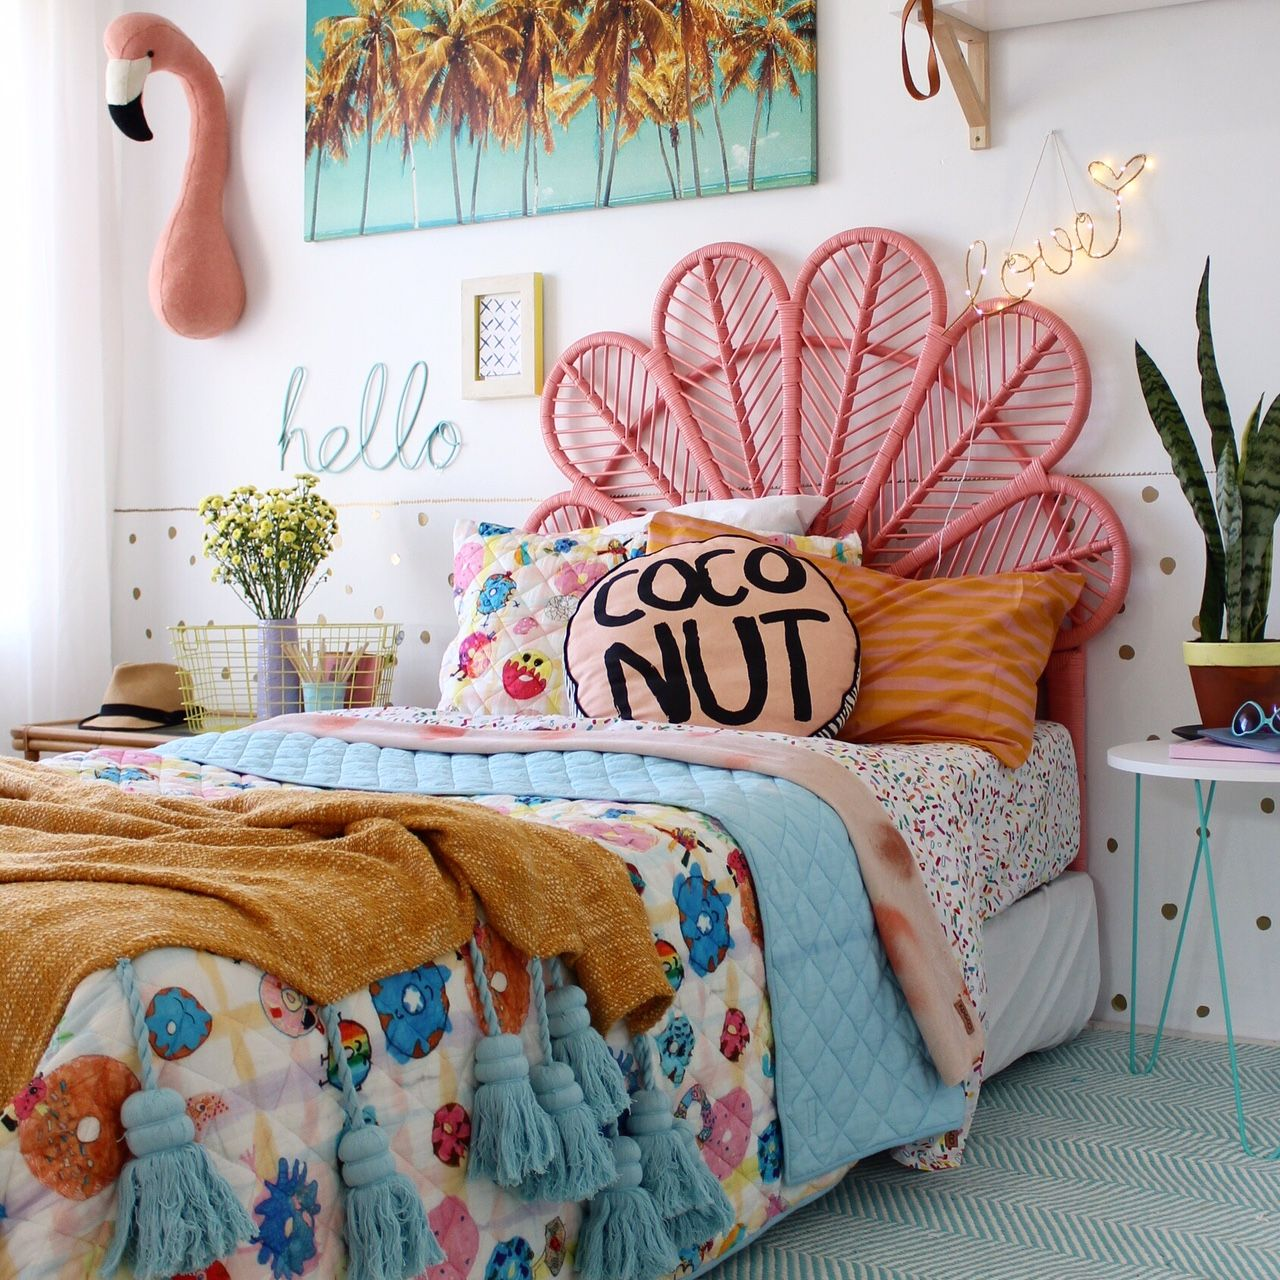 Mini makeover time boho style boho bedrooms ideas for Childrens bedroom ideas girl